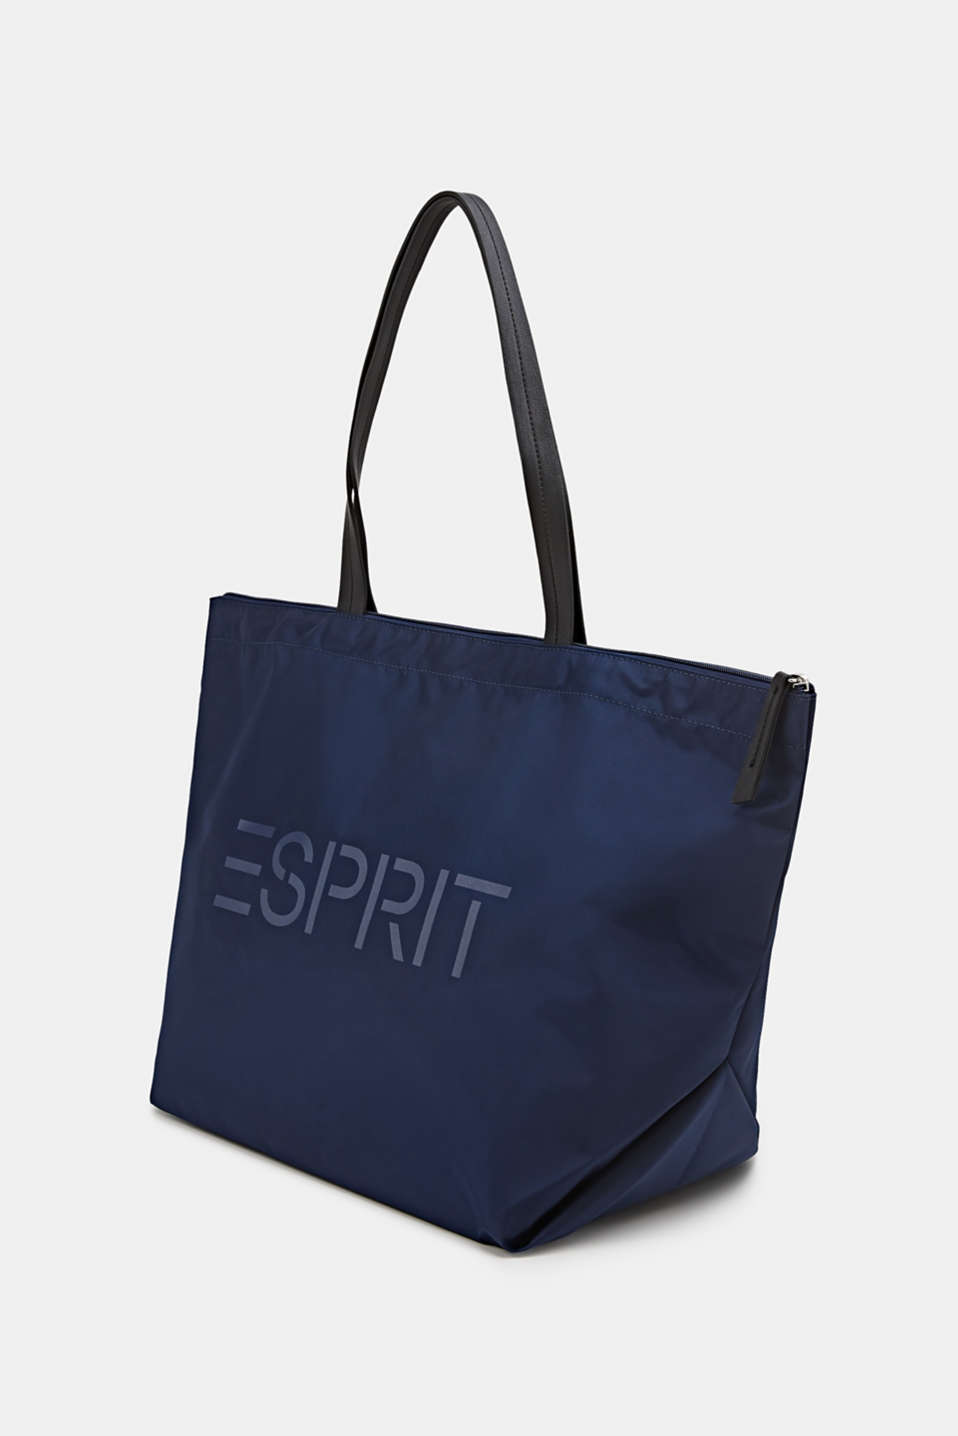 Nylon tote bag, NAVY, detail image number 2